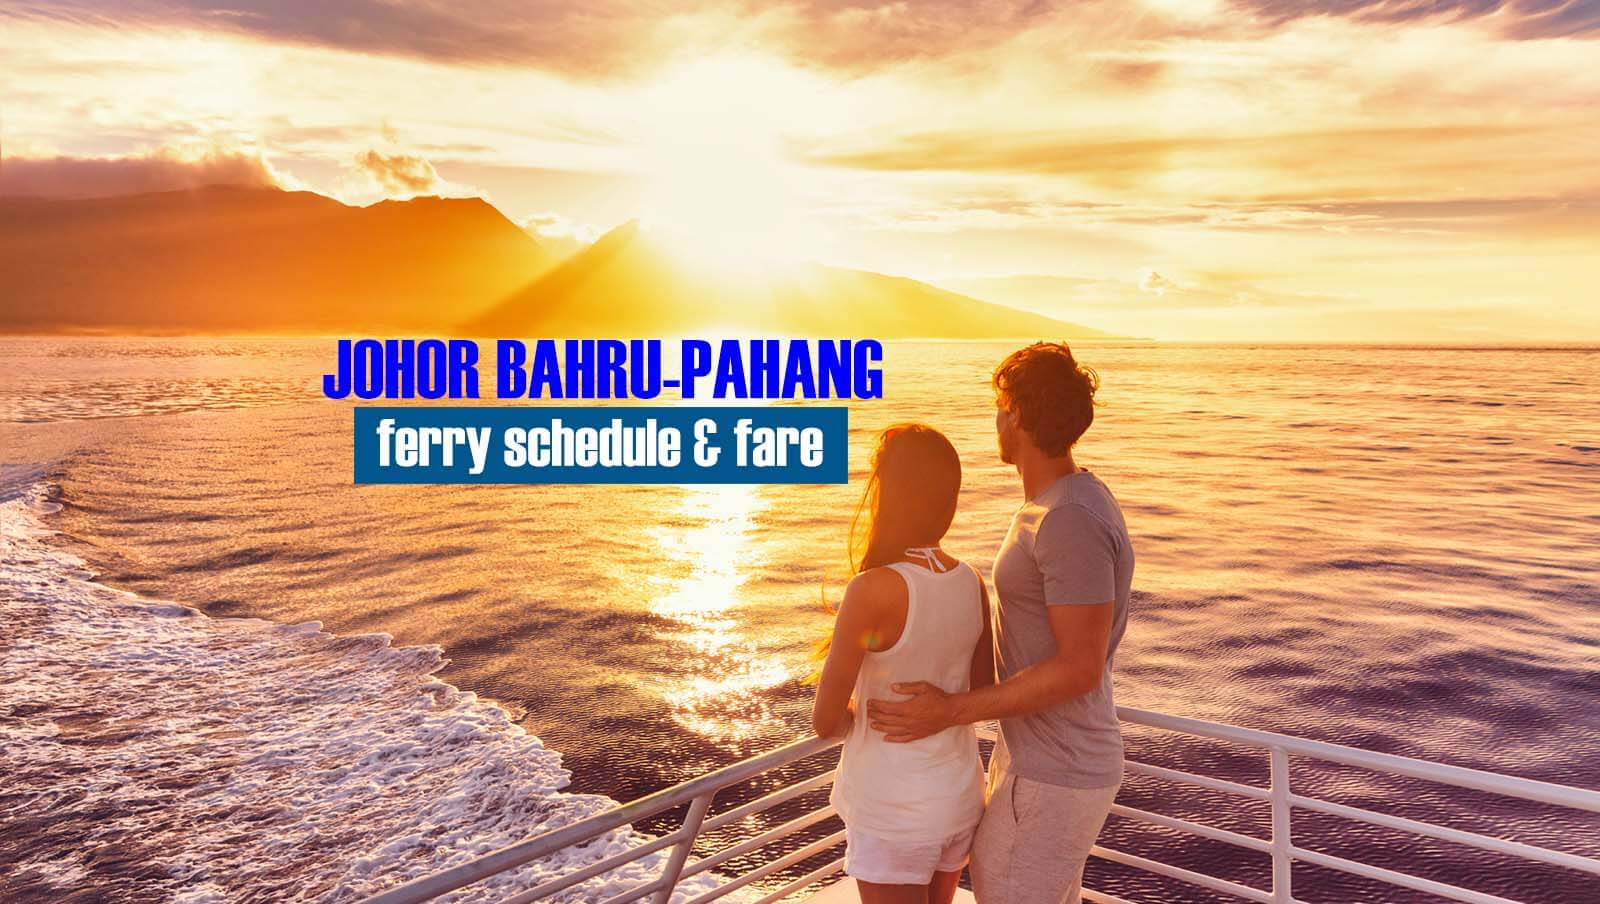 Johor Bahru to Pahang: 2020 Ferry Schedule and Fare